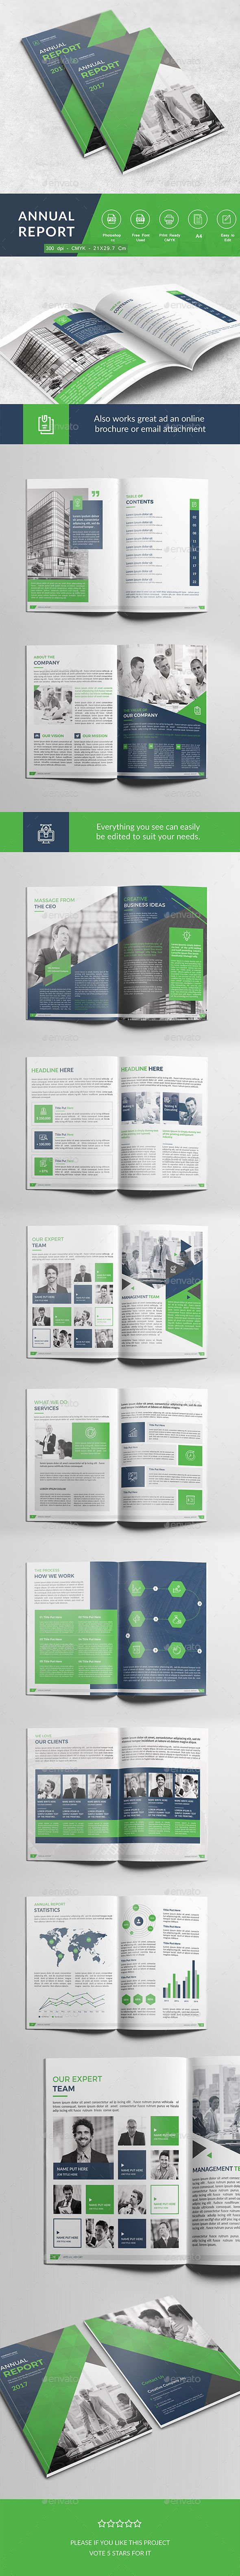 211 0 best annual report template design images on pinterest